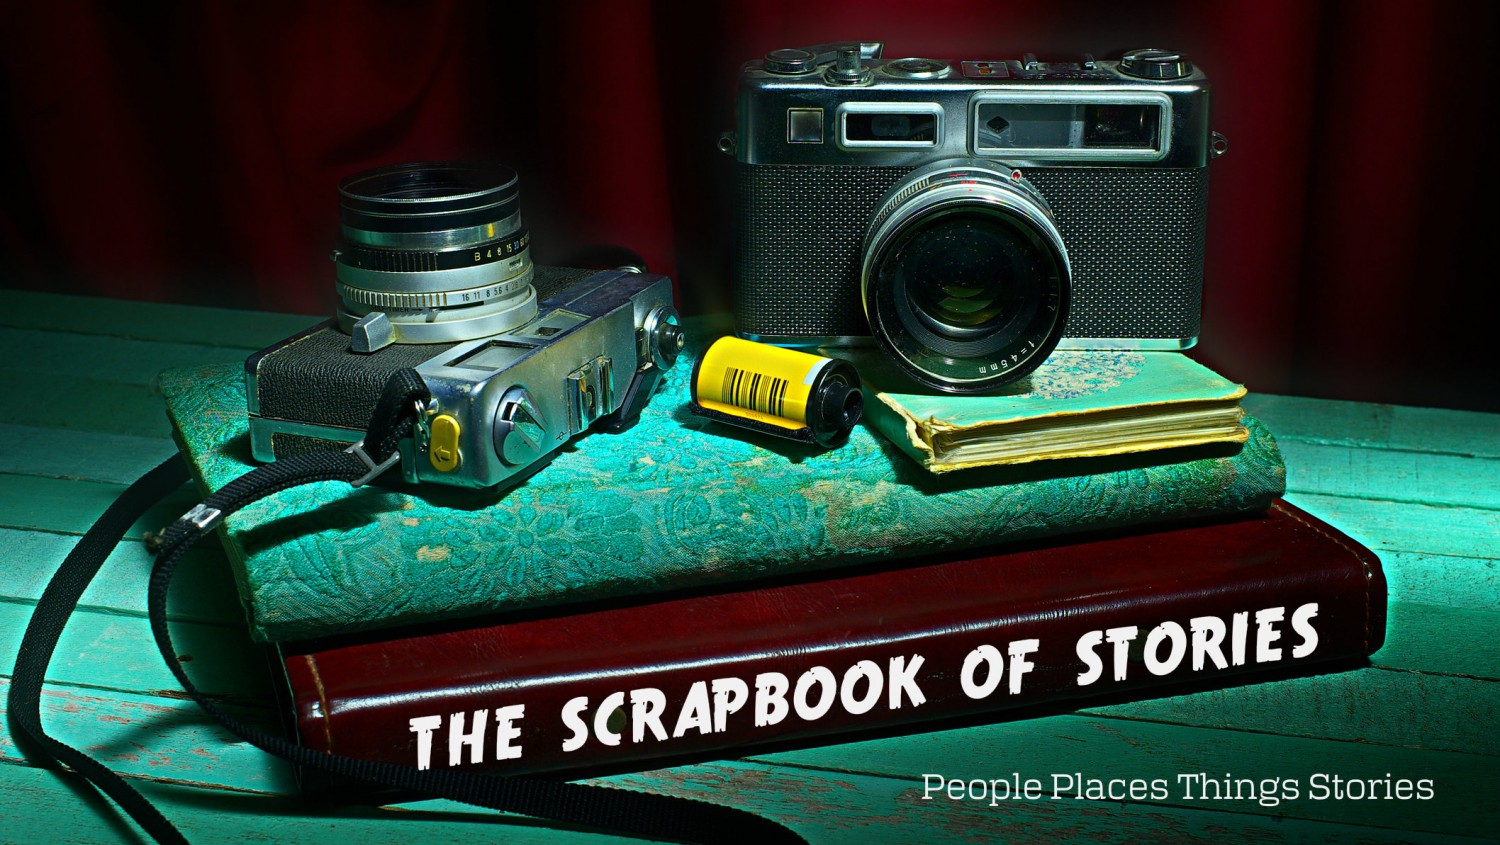 the scrapbook of stories